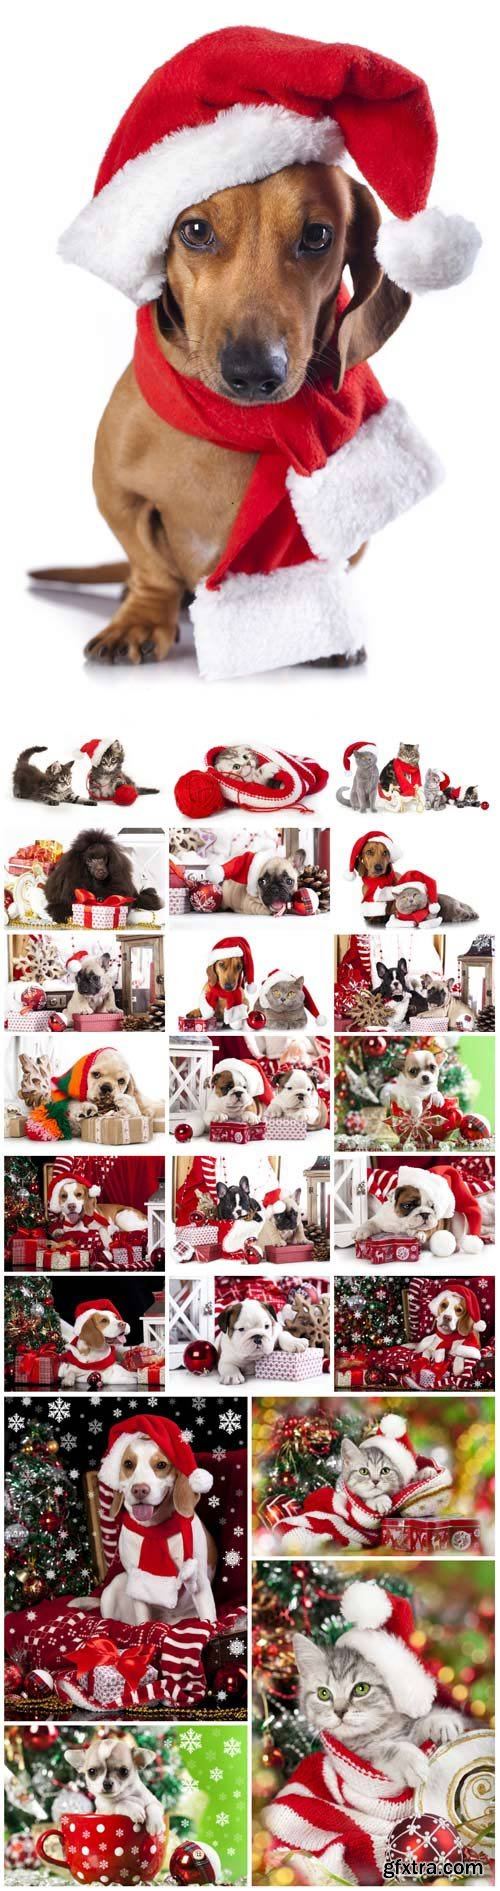 New Year and Christmas stock photos №19